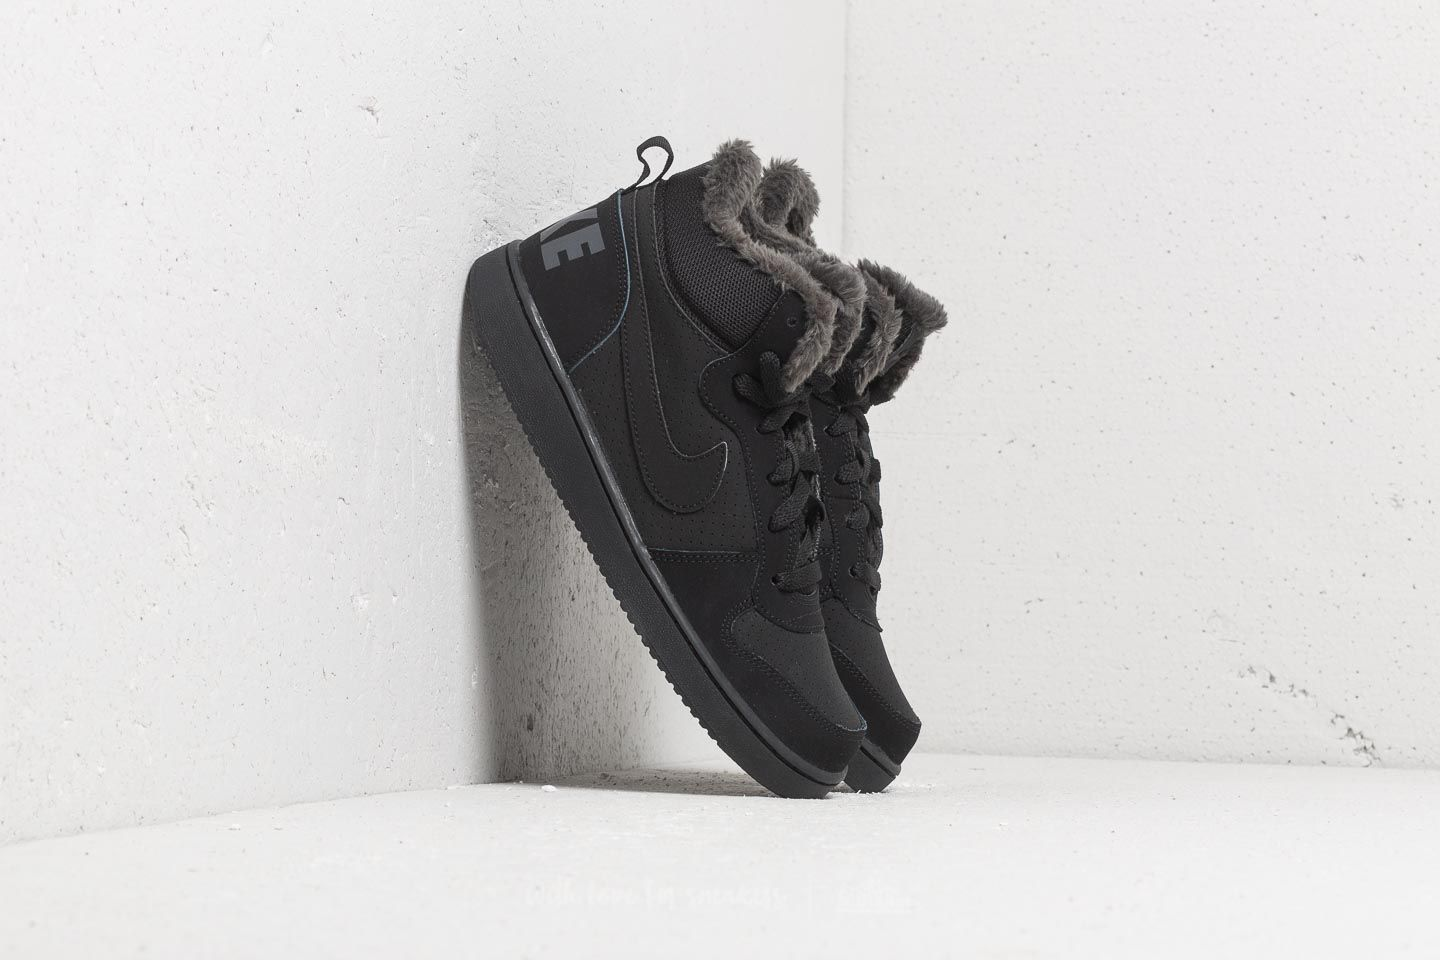 ca86103a258 Nike Court Borough Mid Winter (GS) Black  Black-Anthracite